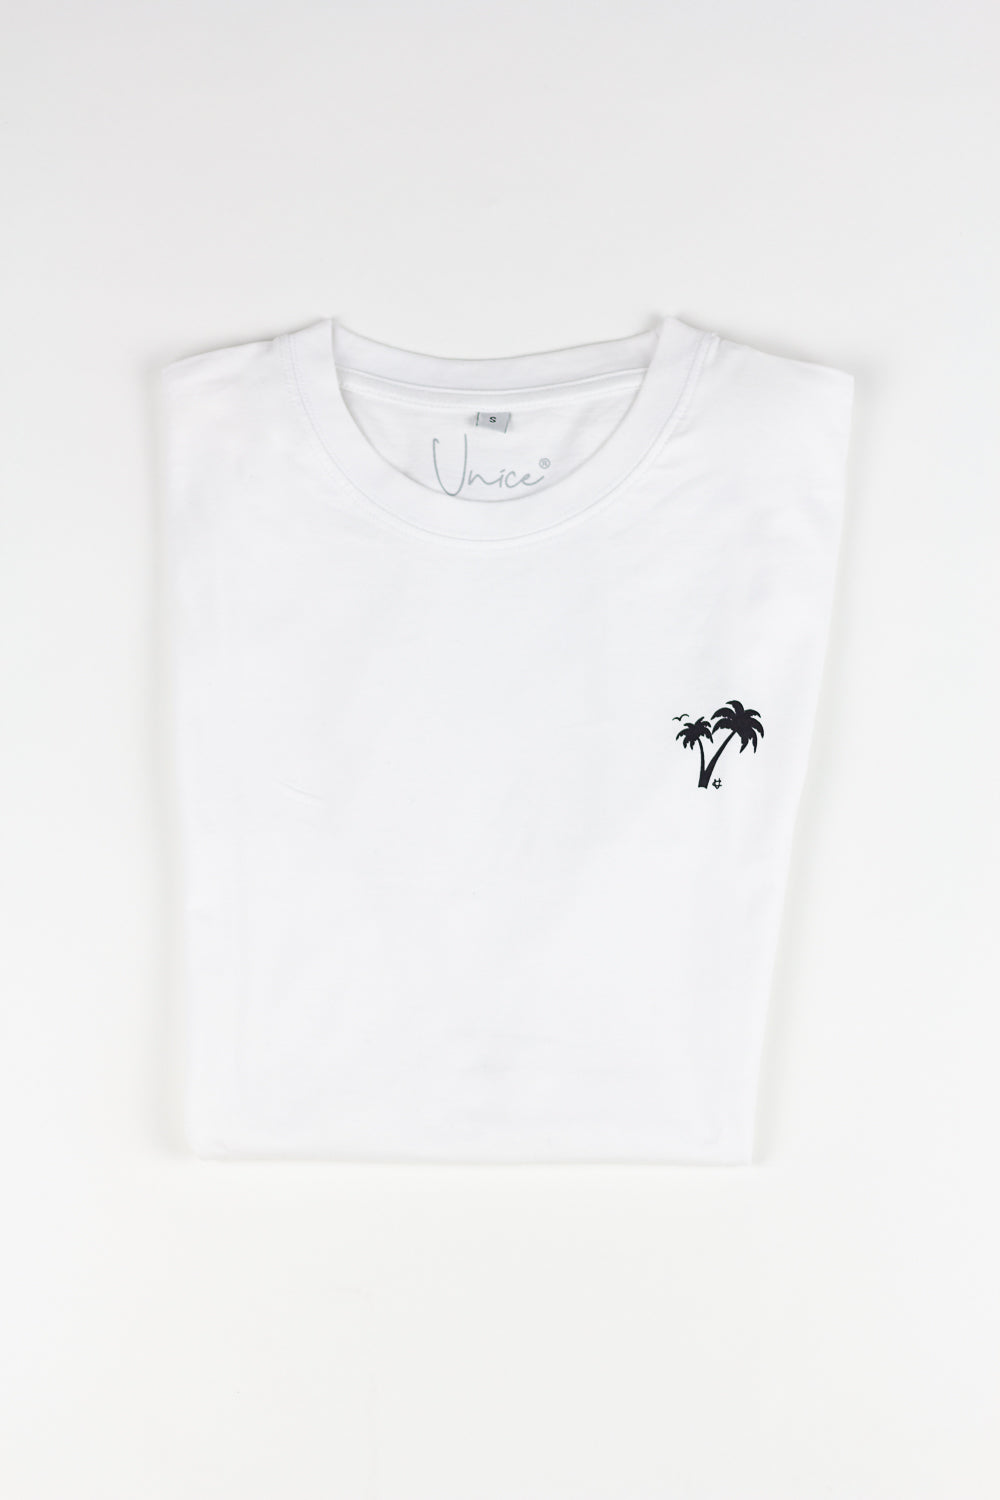 2. Unice T-shirt Palmtree WHITE